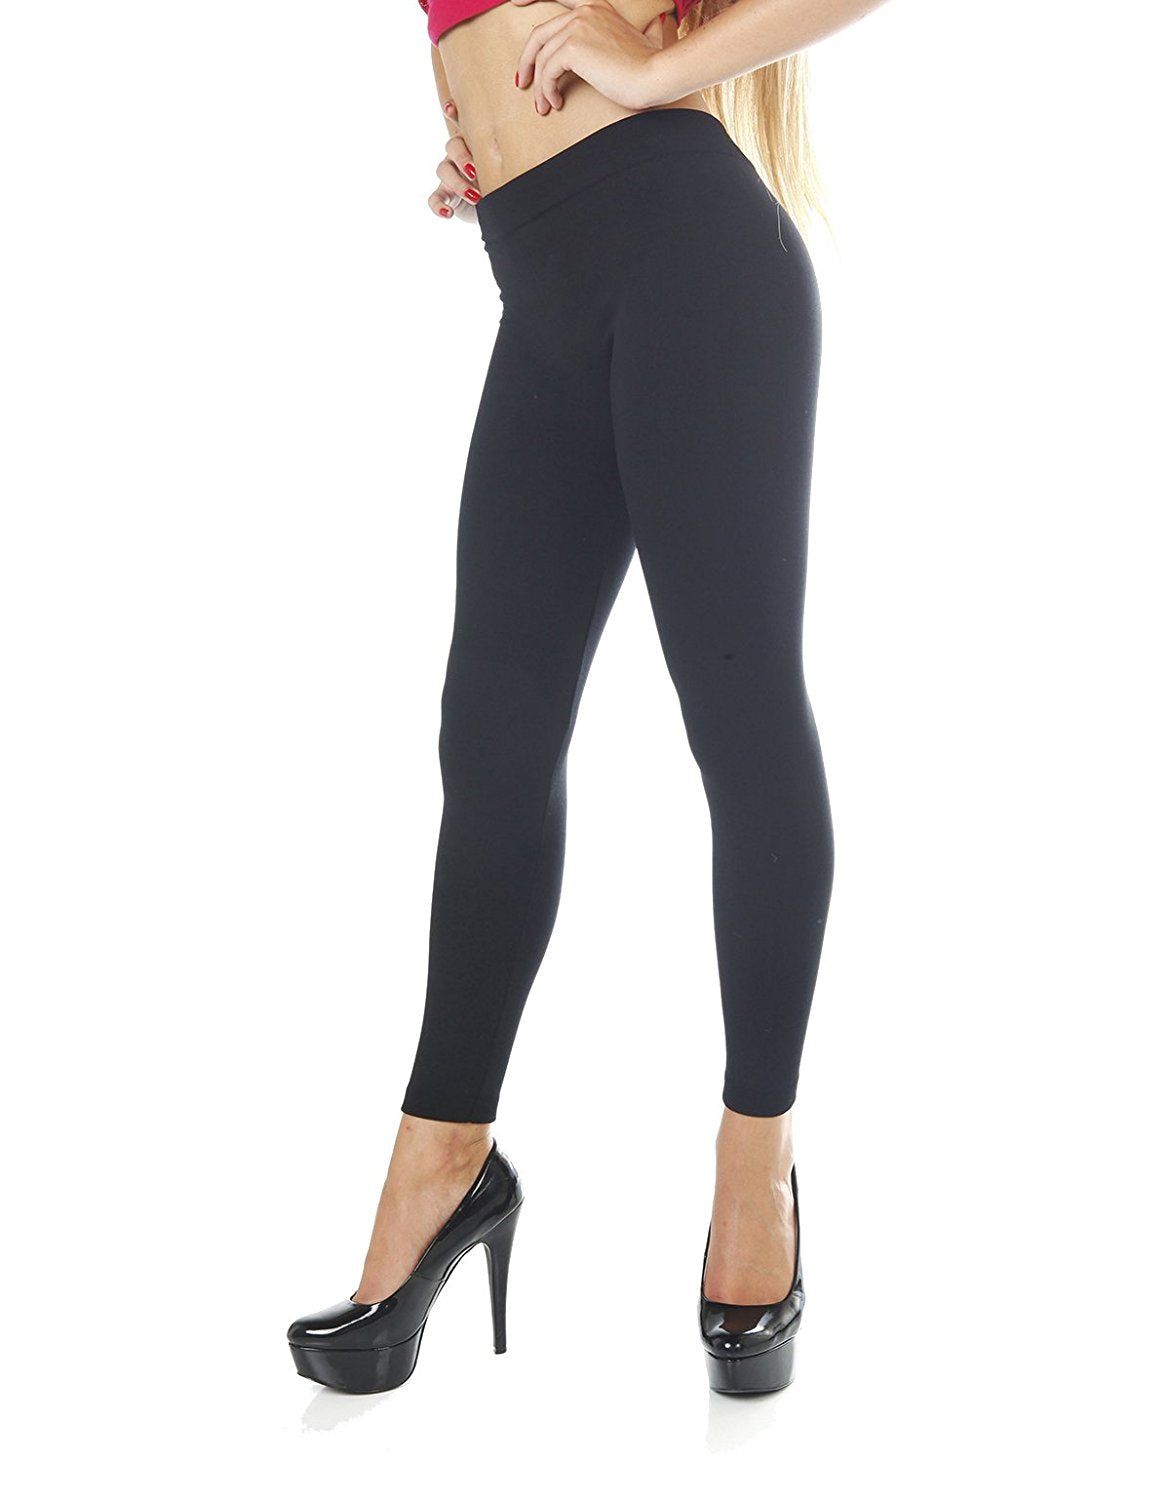 full length leggings with faux fur inside Plus size (One size)